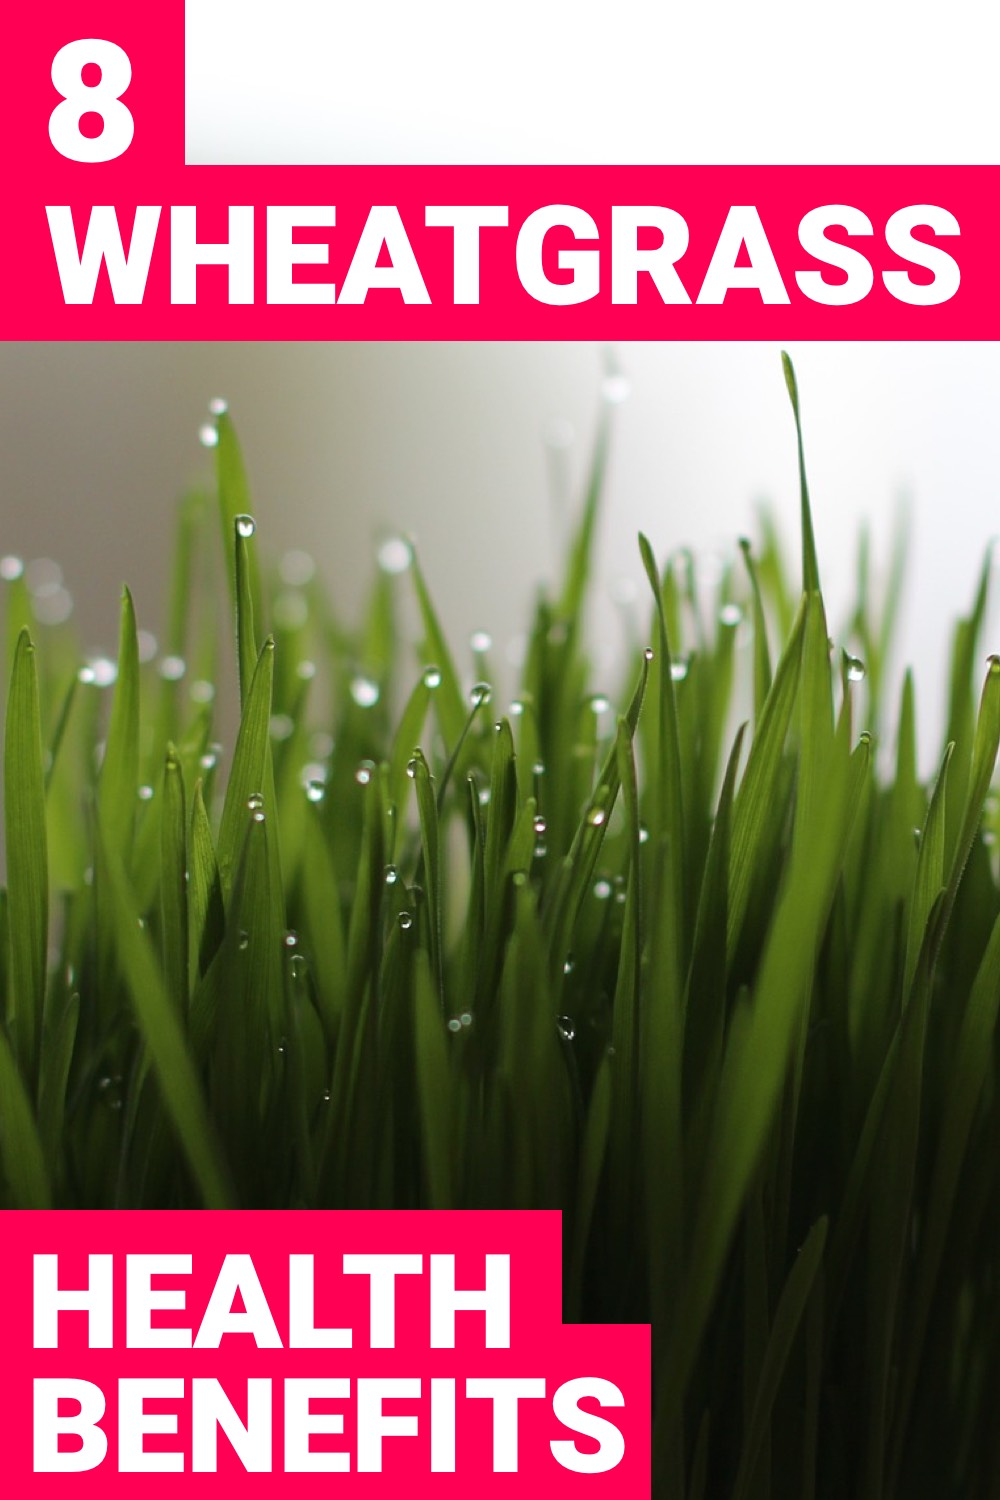 Having wheatgrass will improve your healthy greatly. Here are 8 wheatgrass benefits you need.